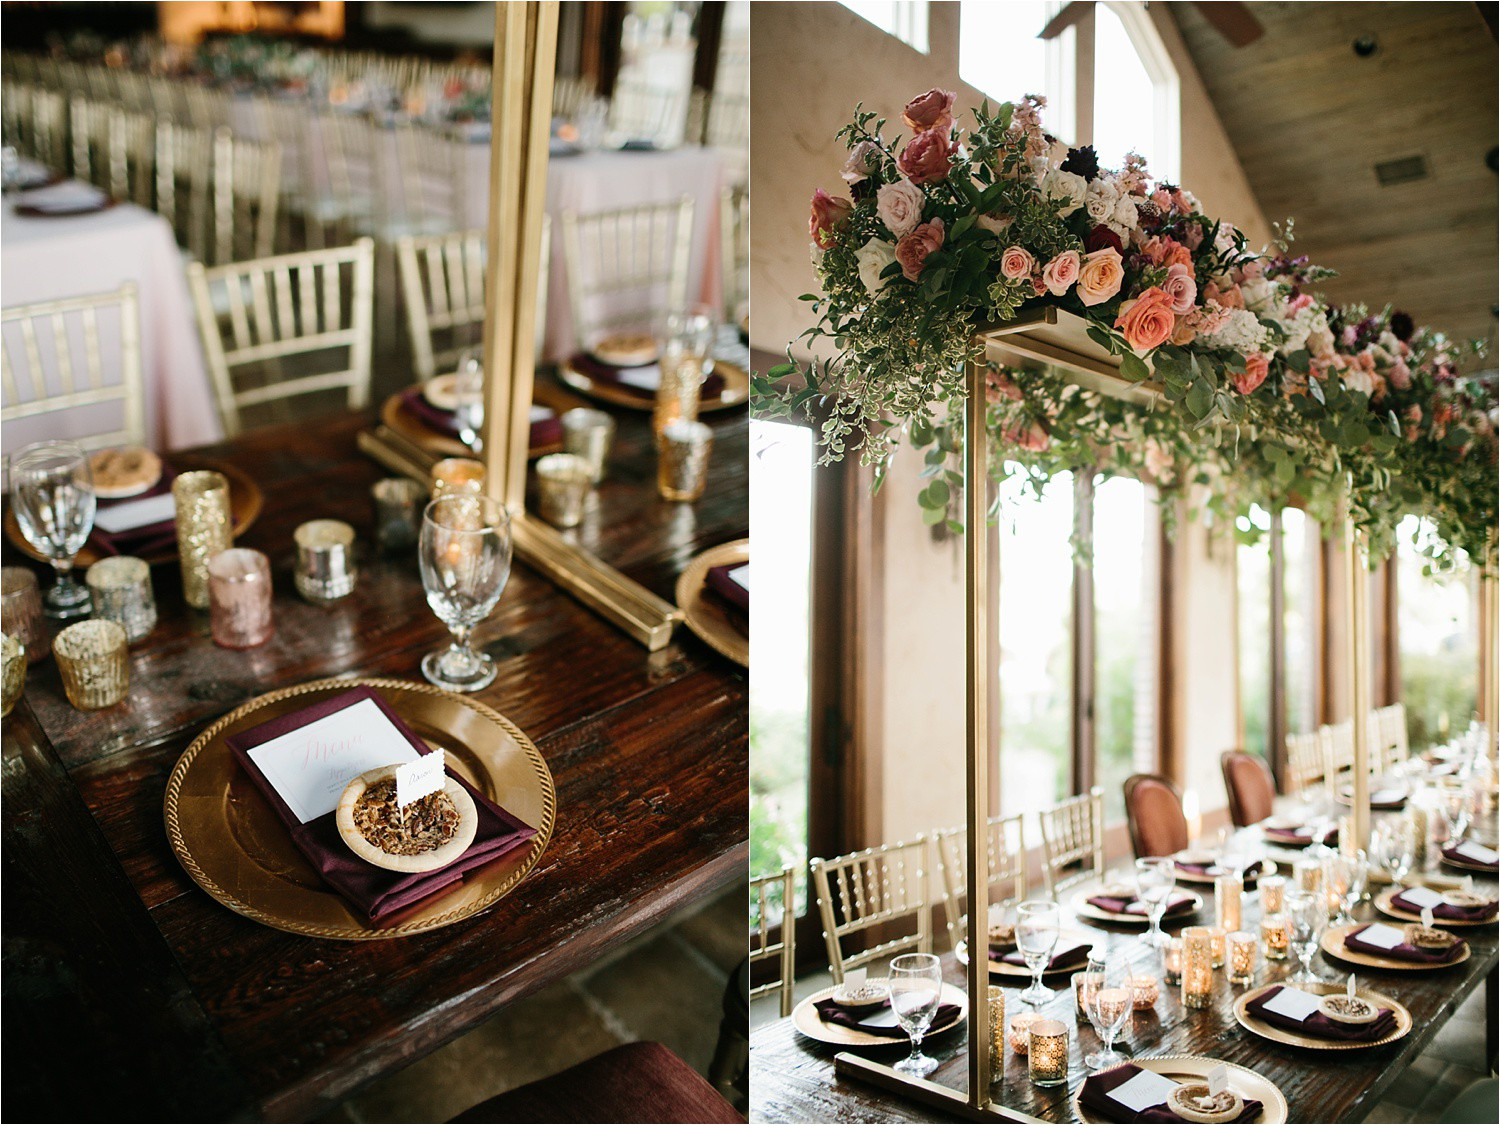 an-elegant-family-ranch-wedding-on-lake-worth-with-burgundy-apricot-and-blush-inspired-decorations-by-north-texas-wedding-photographer-rachel-meagan-photography-_-22